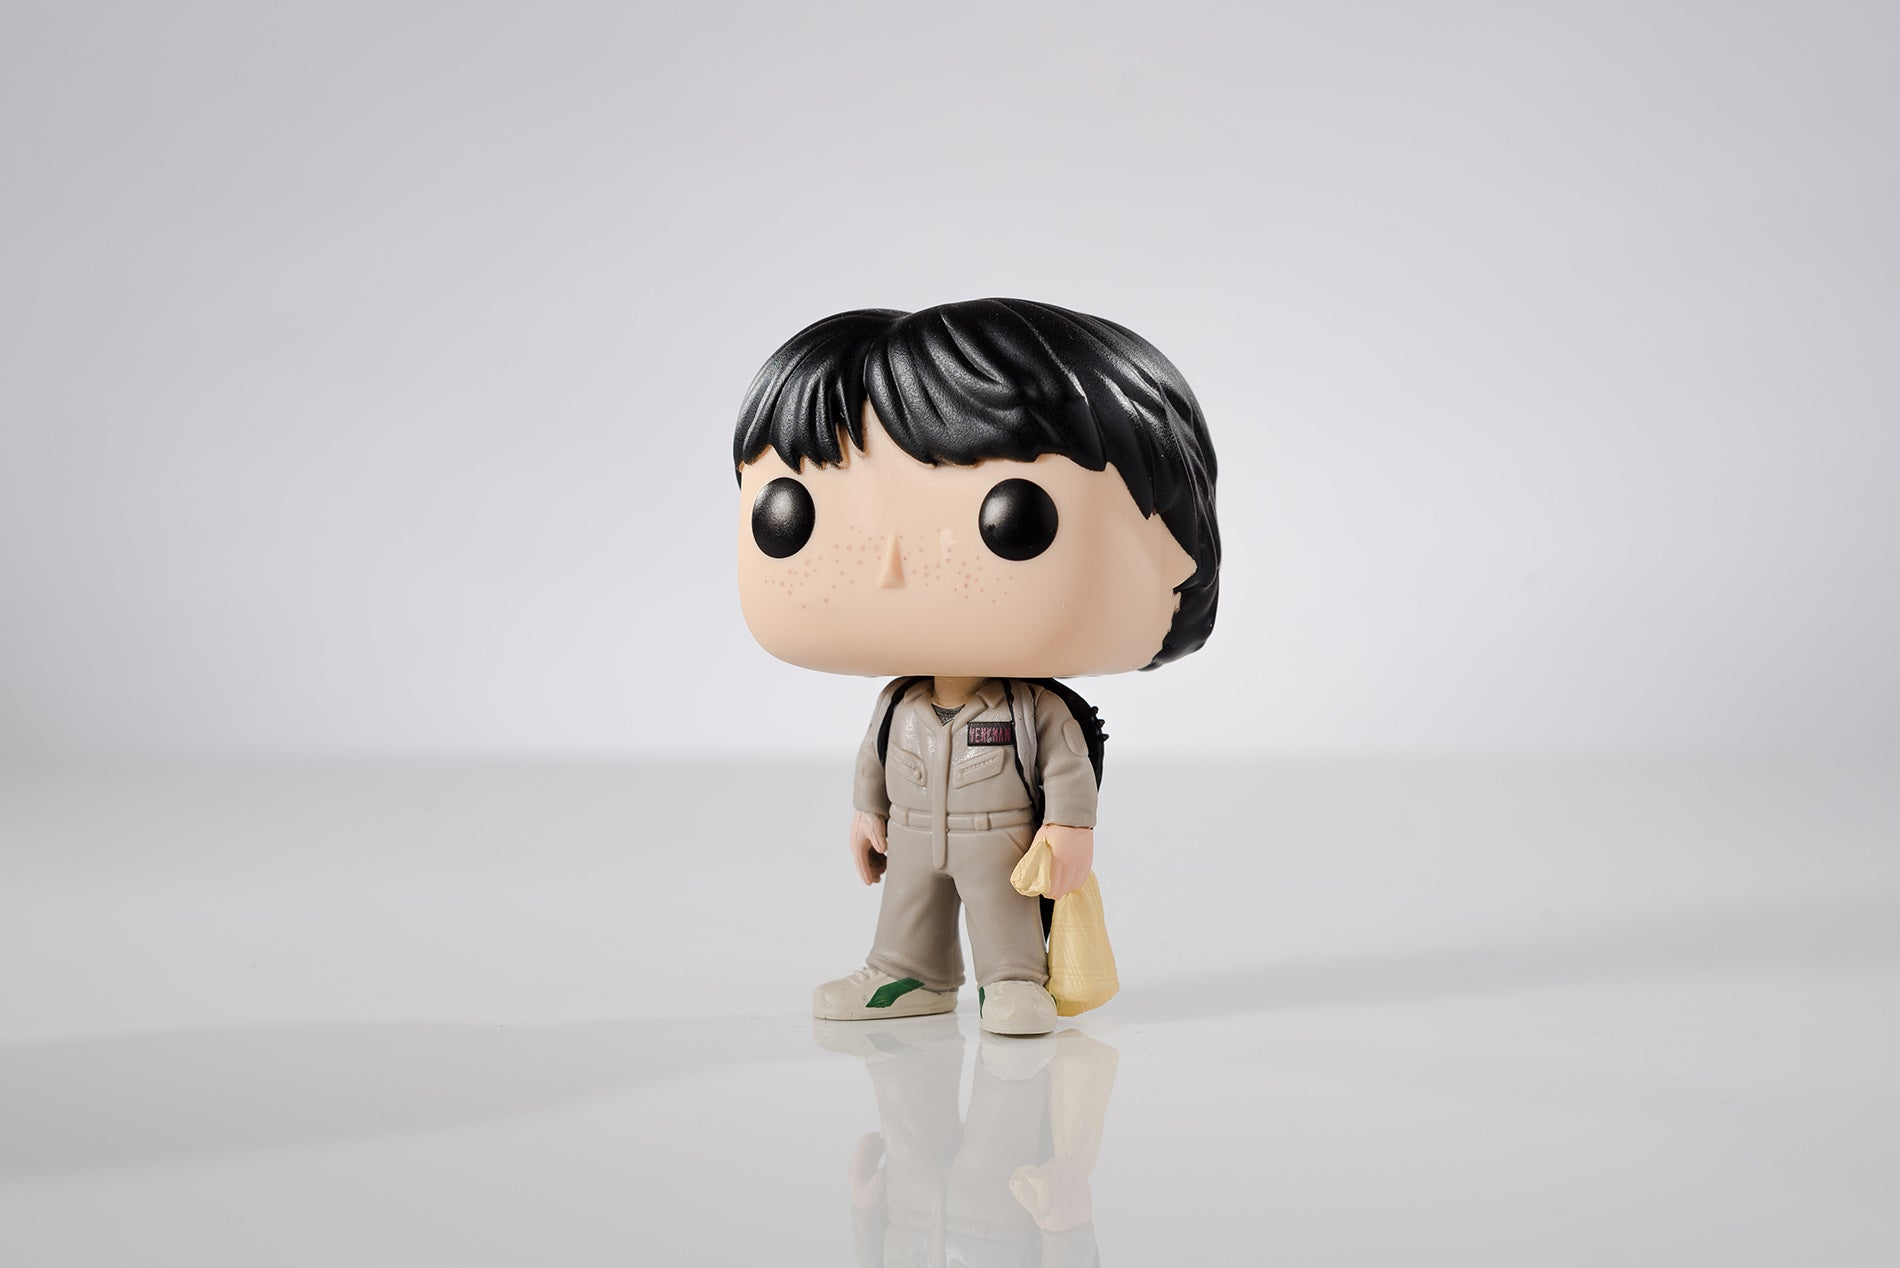 Stranger Things Pop! Vinyl Figure Ghostbusters Mike